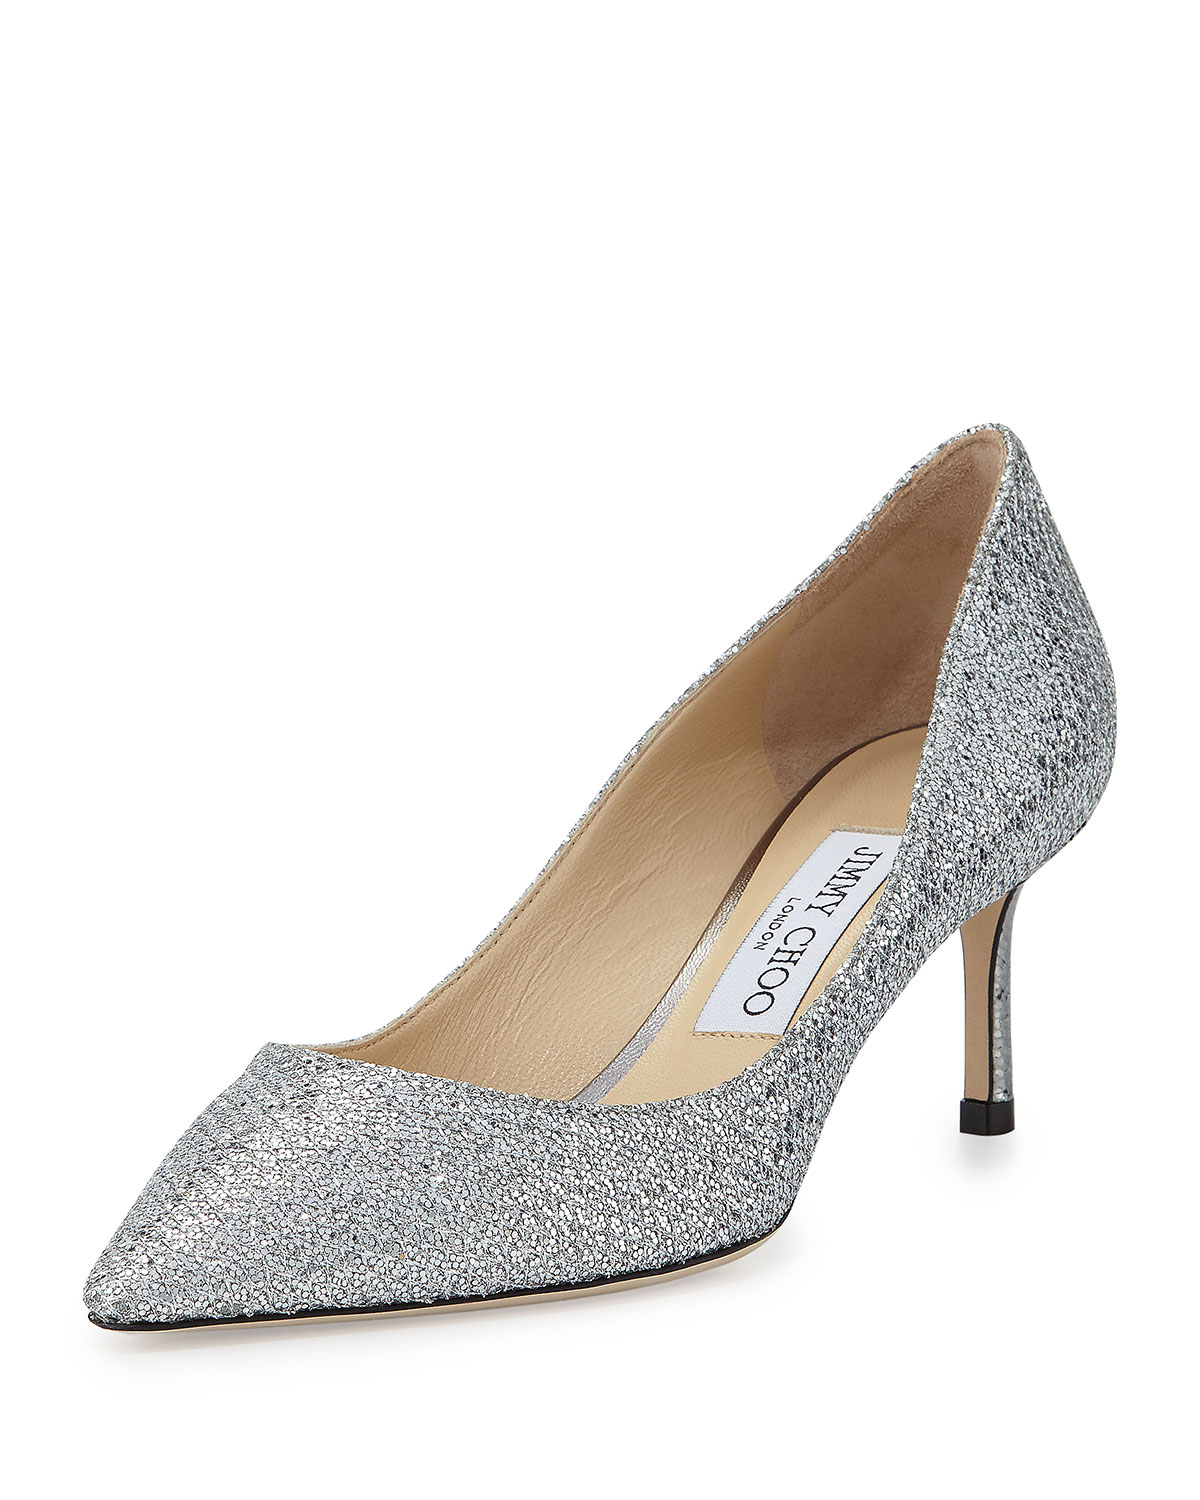 5fb8619bc98 Jimmy Choo Romy Glitter Pointed-Toe 60mm Pump